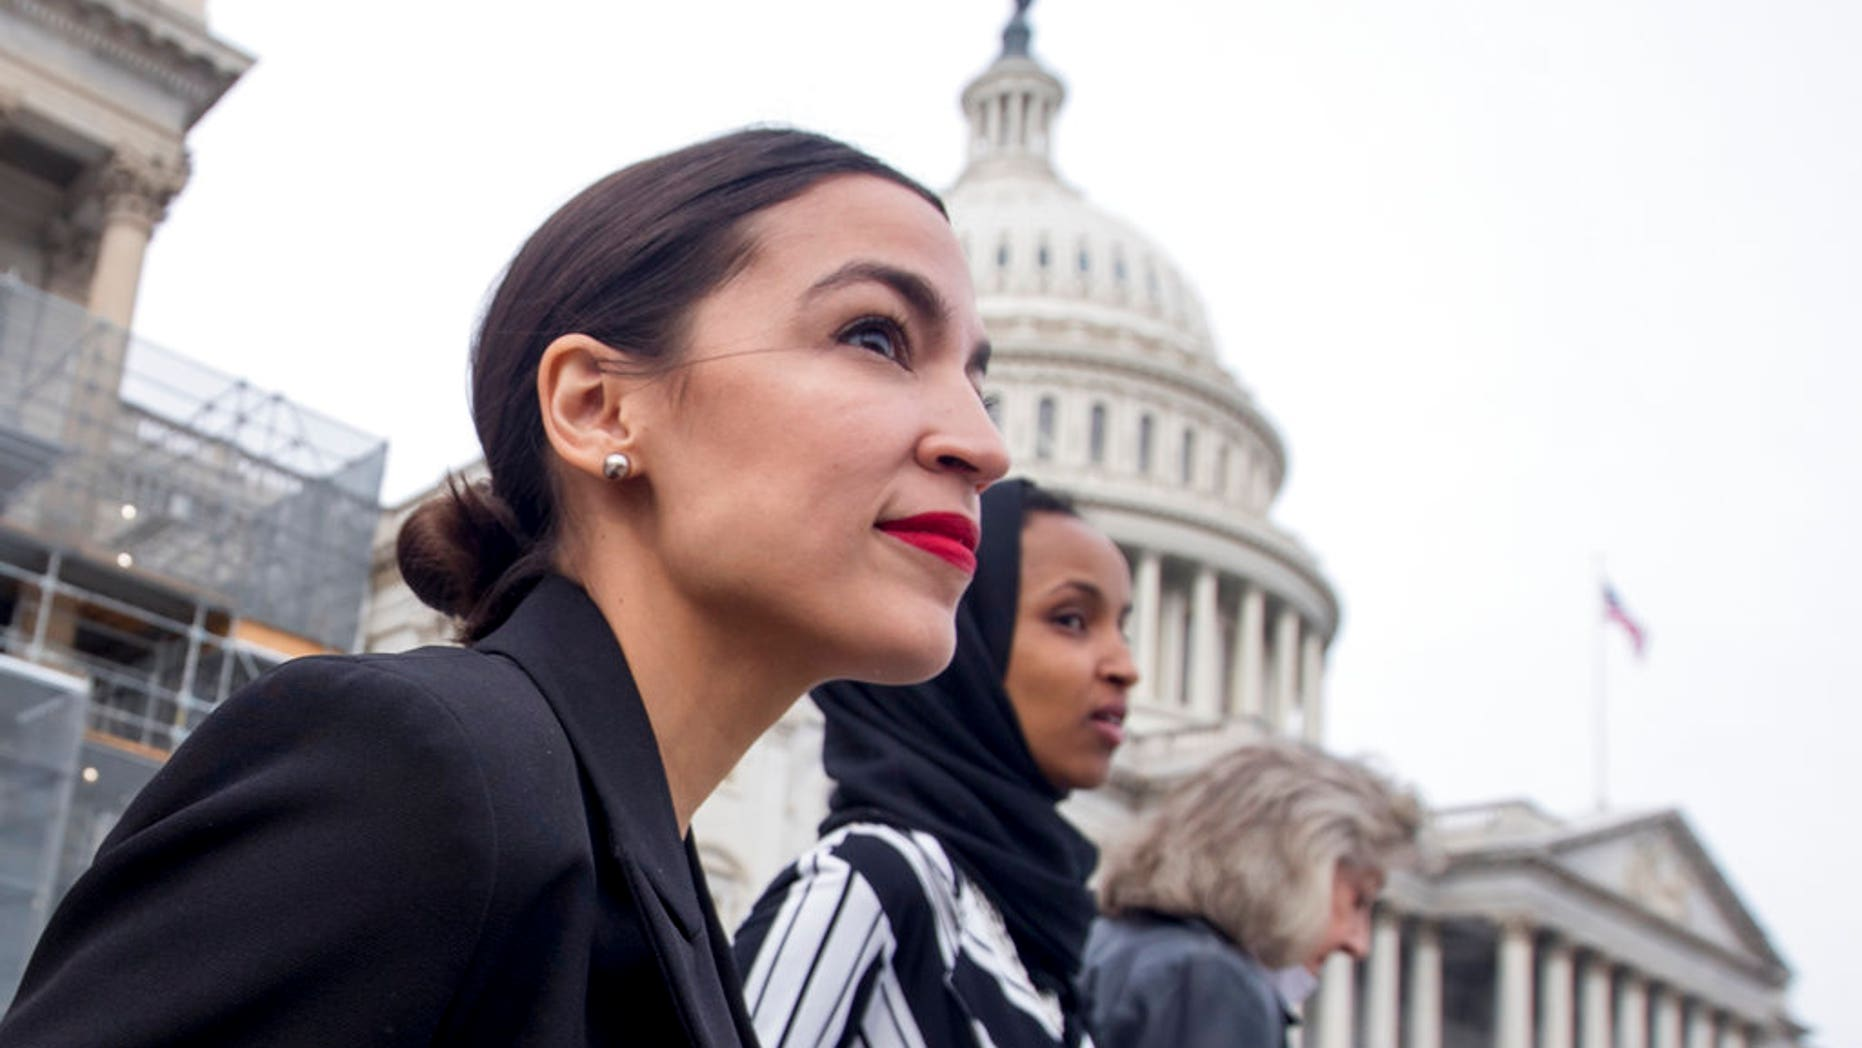 Rep. Alexandria Ocasio-Cortez, D-N.Y., walks down the House steps to take a group photograph of the House Democratic women members of the 116th Congress on the East Front Capitol Plaza on Capitol Hill in Washington, Friday, Jan. 4, 2019. (AP Photo/Andrew Harnik)